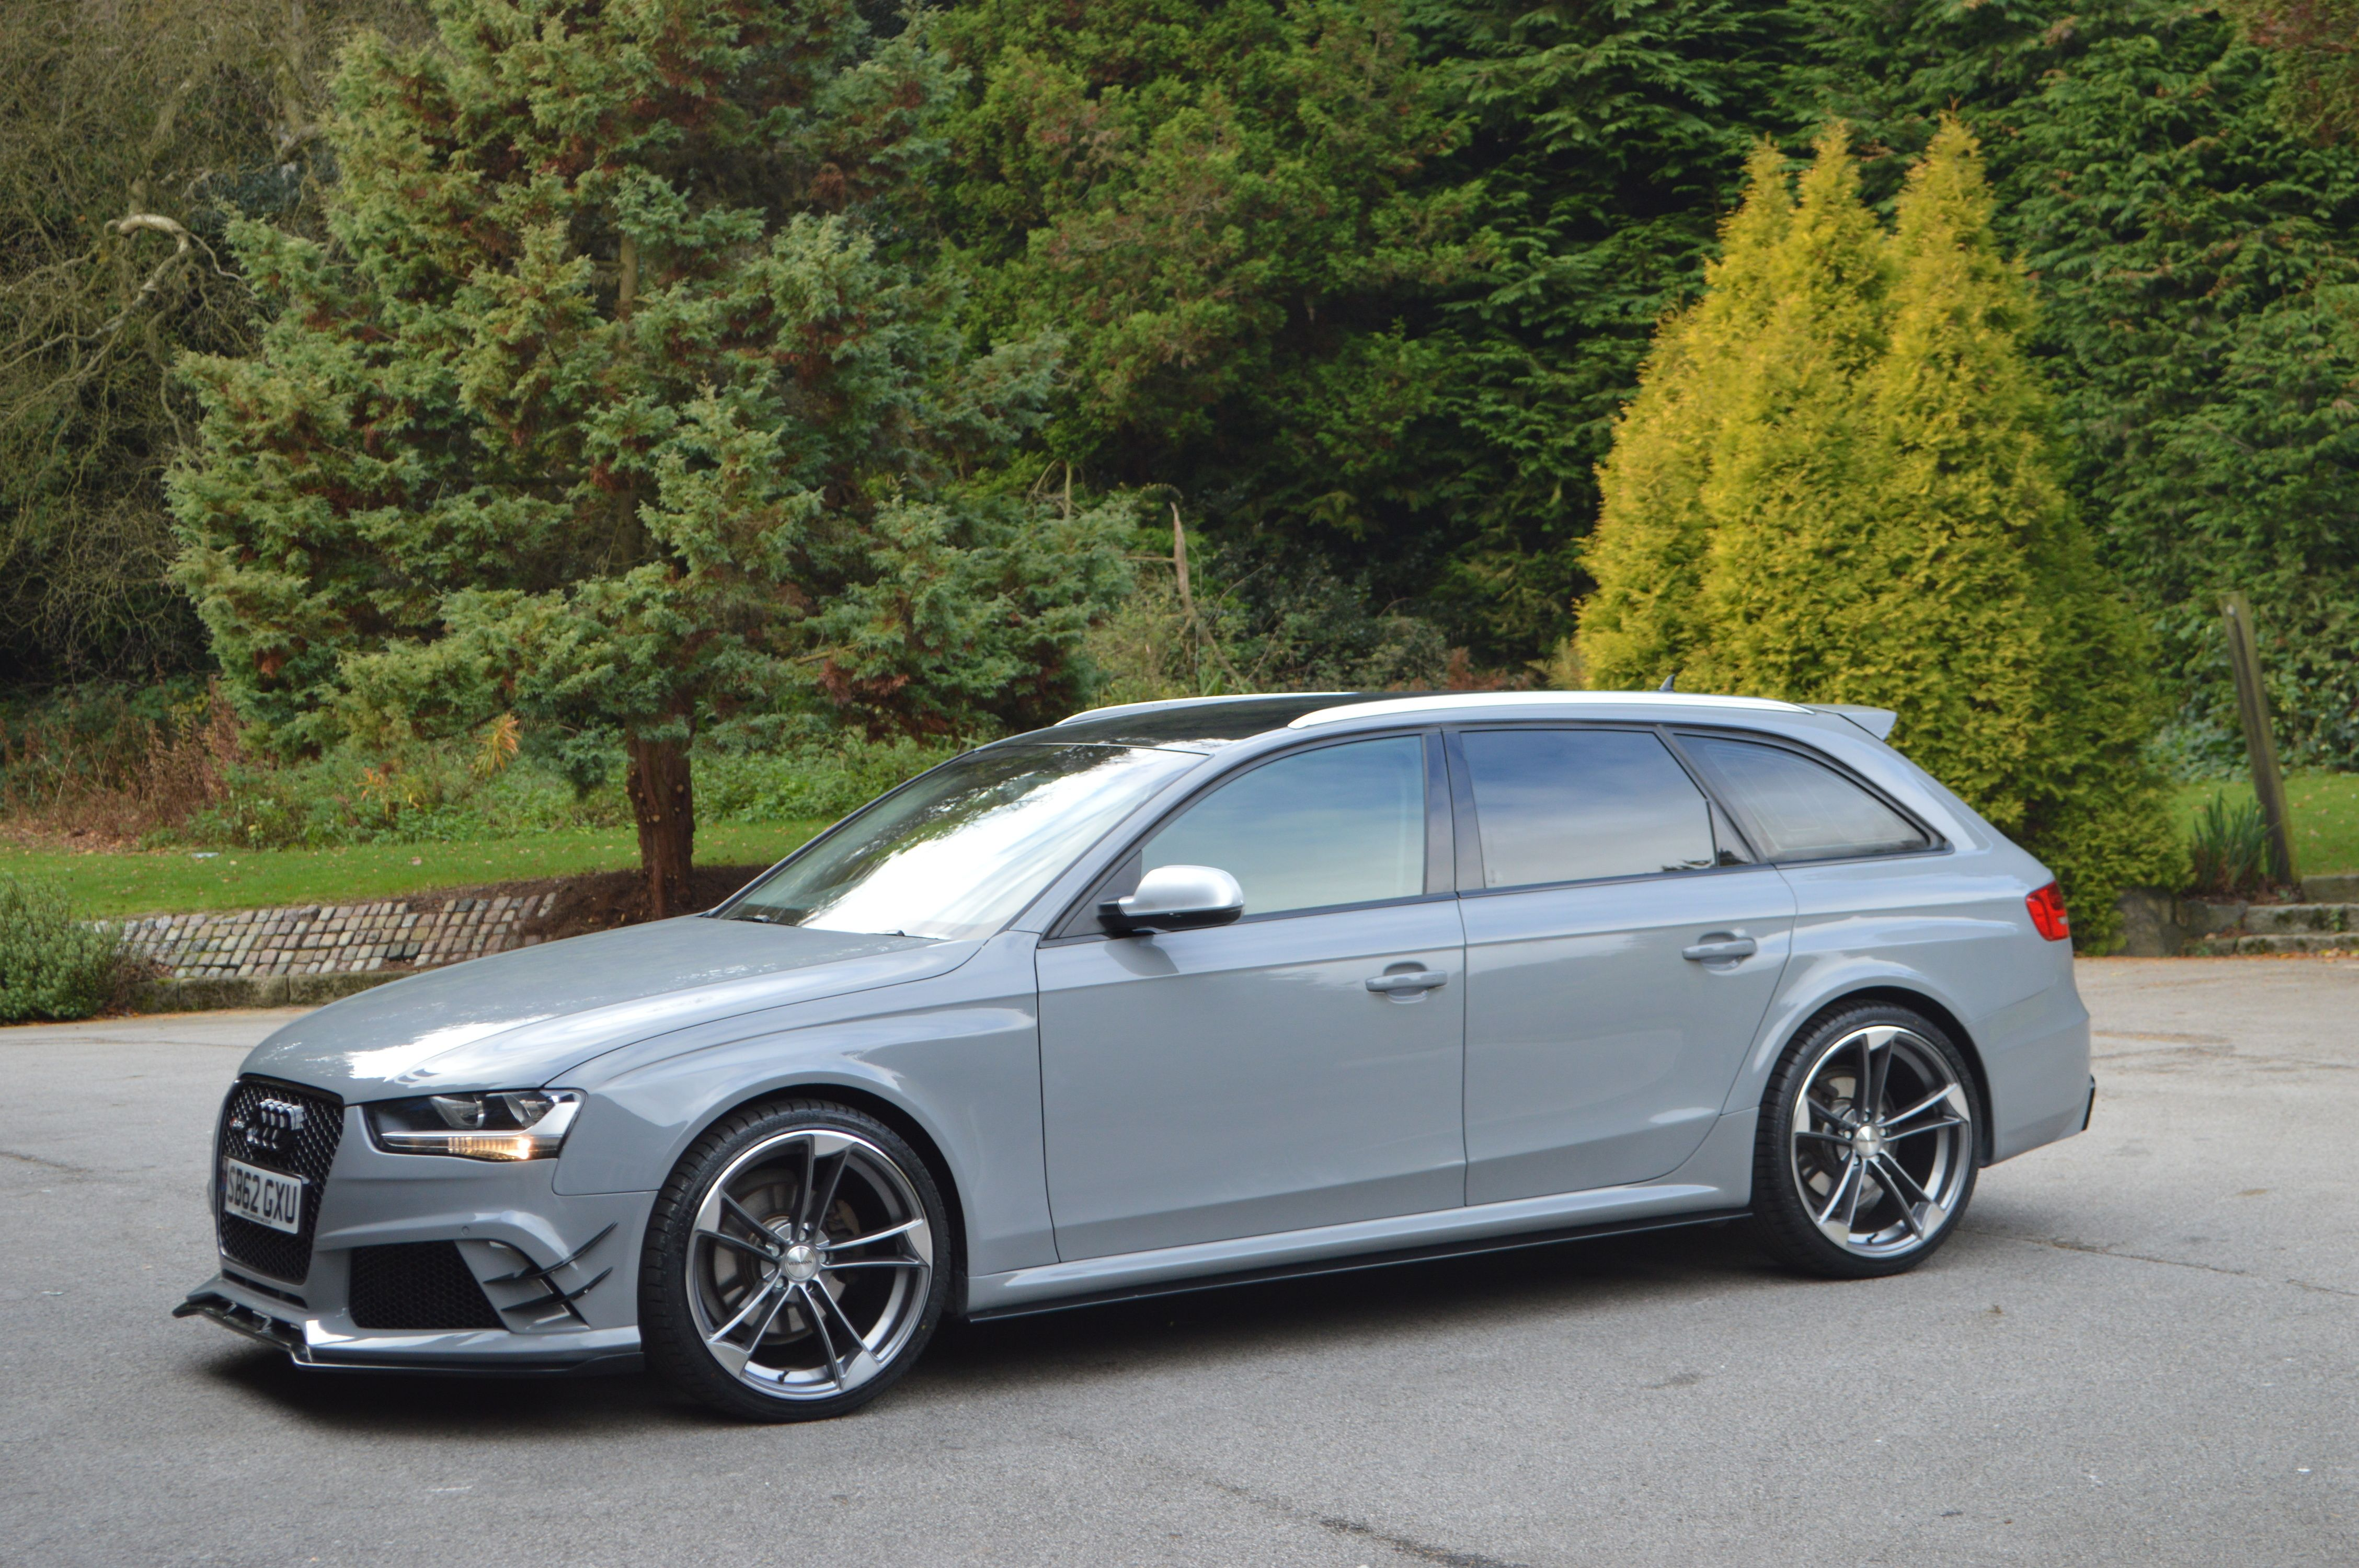 Audi Rs4 Avant Body Kit For Audi A4 B8 By Xclusive Customz Sheffield Audi A4 Audi Audi A4 Avant